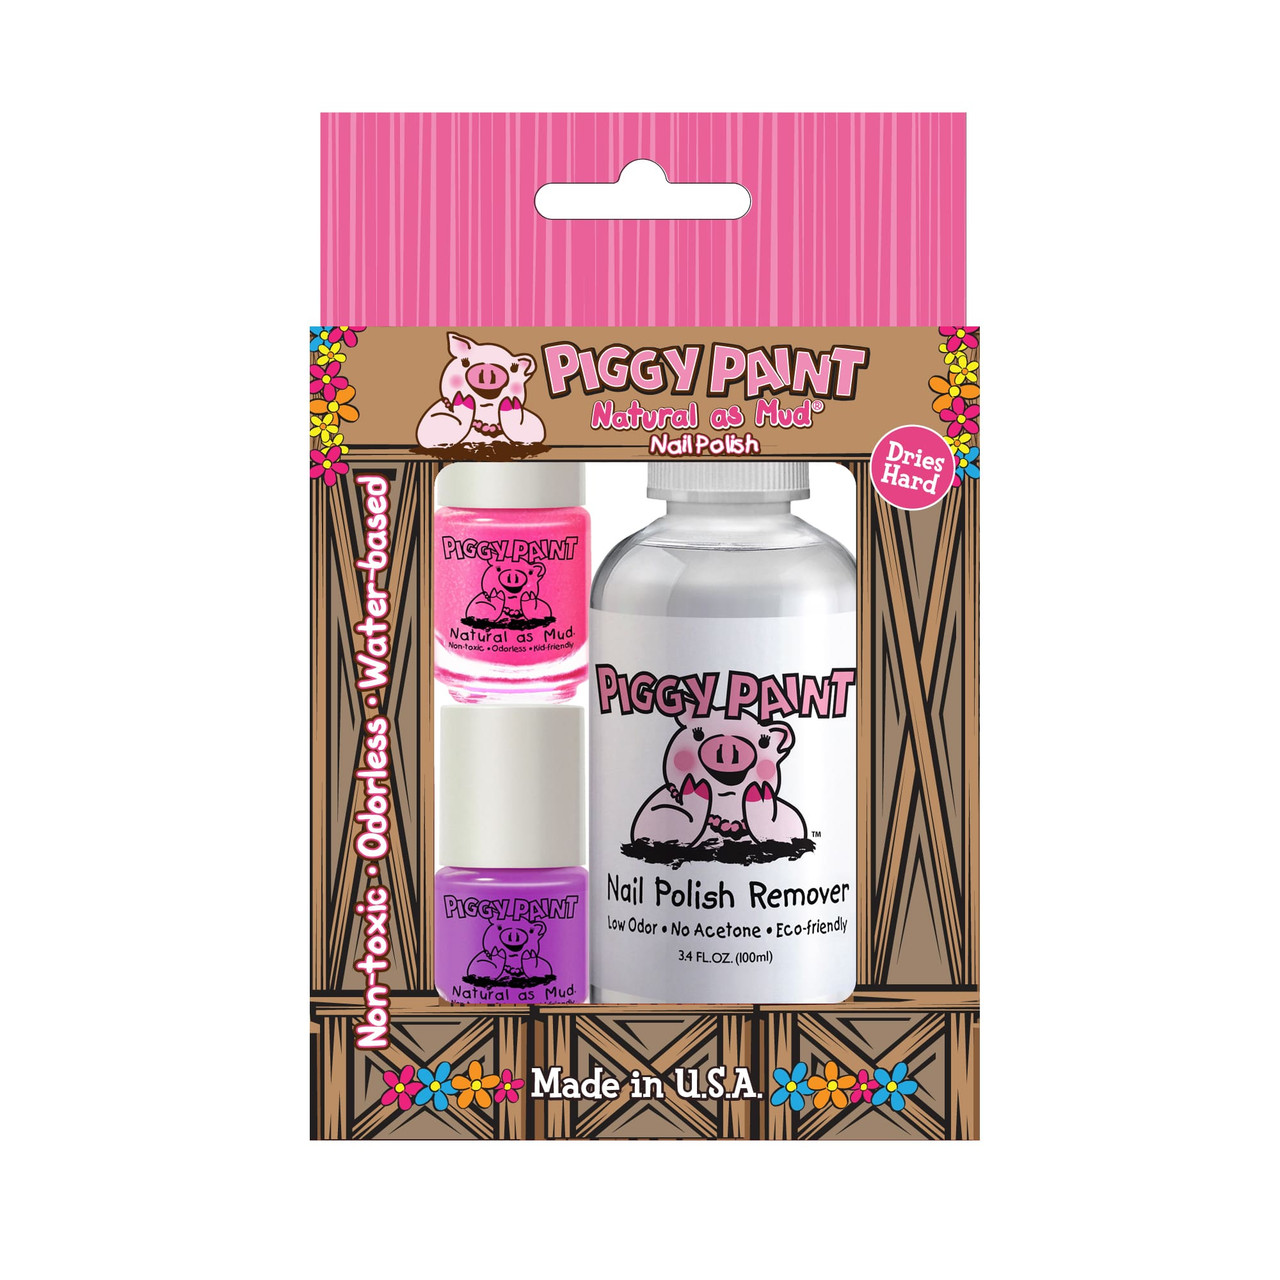 Piggy Paint Nail Polish Set with Remover